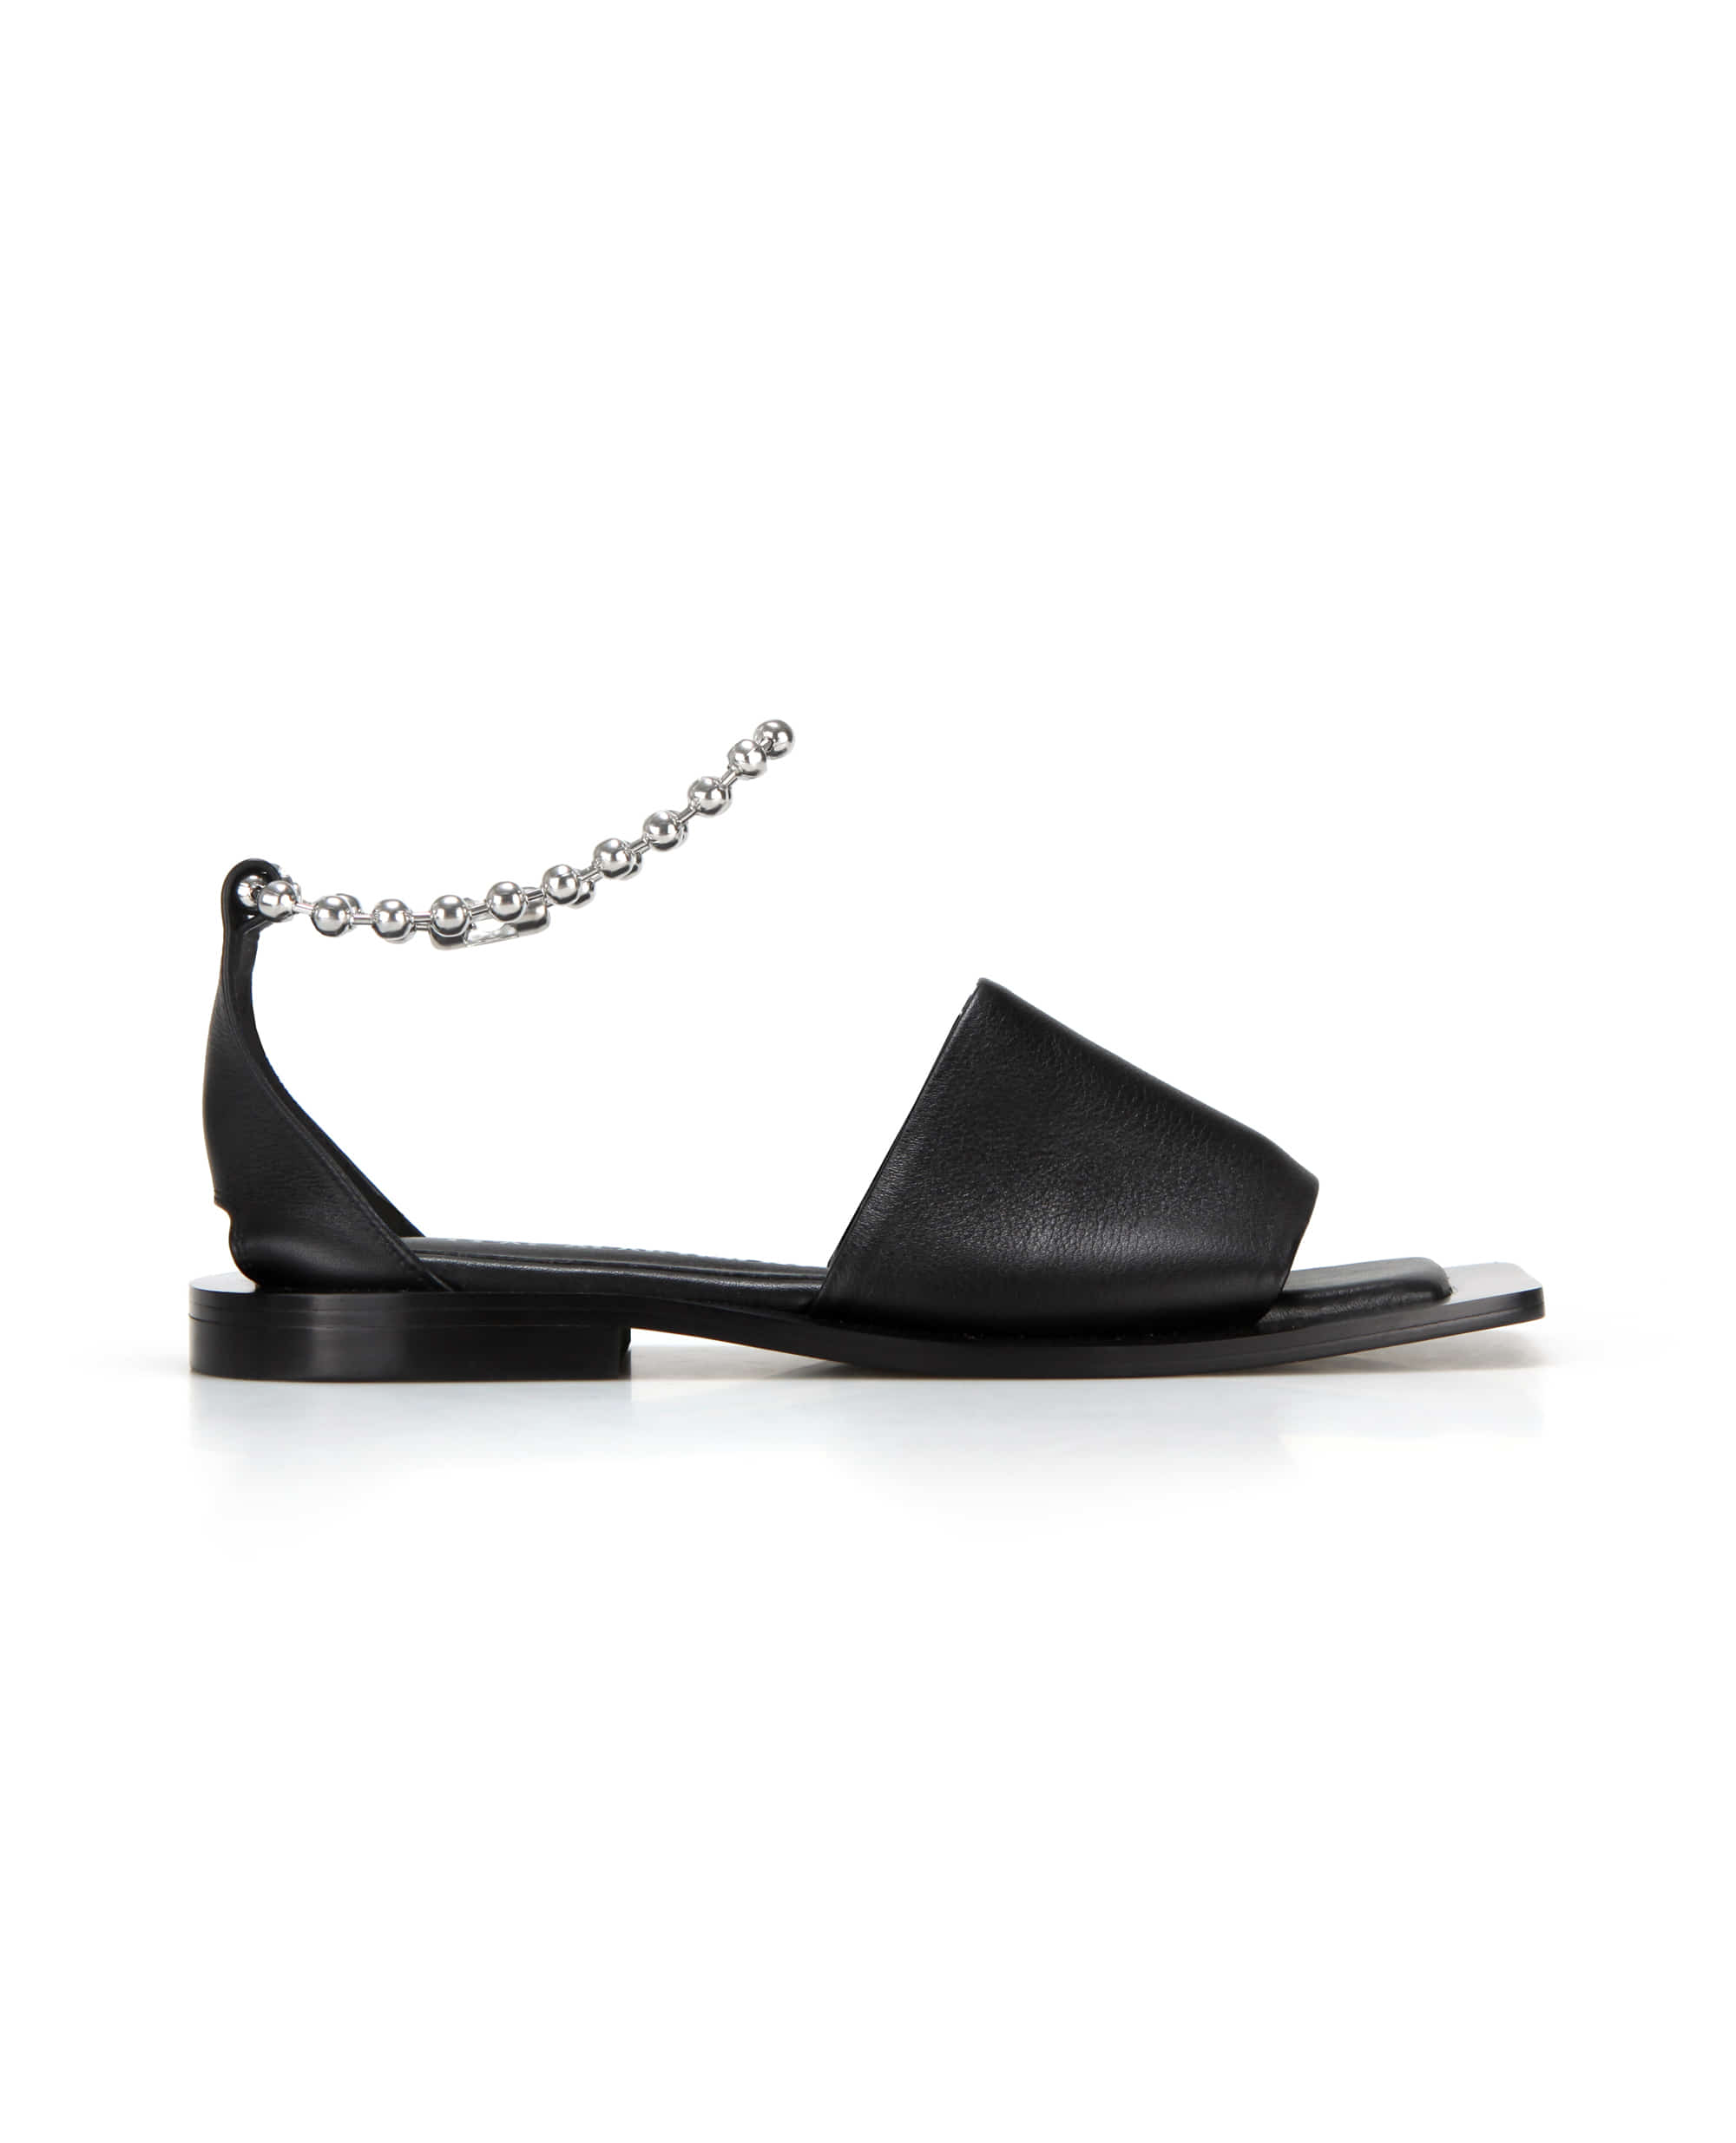 Wide square sole slide sandals | Black